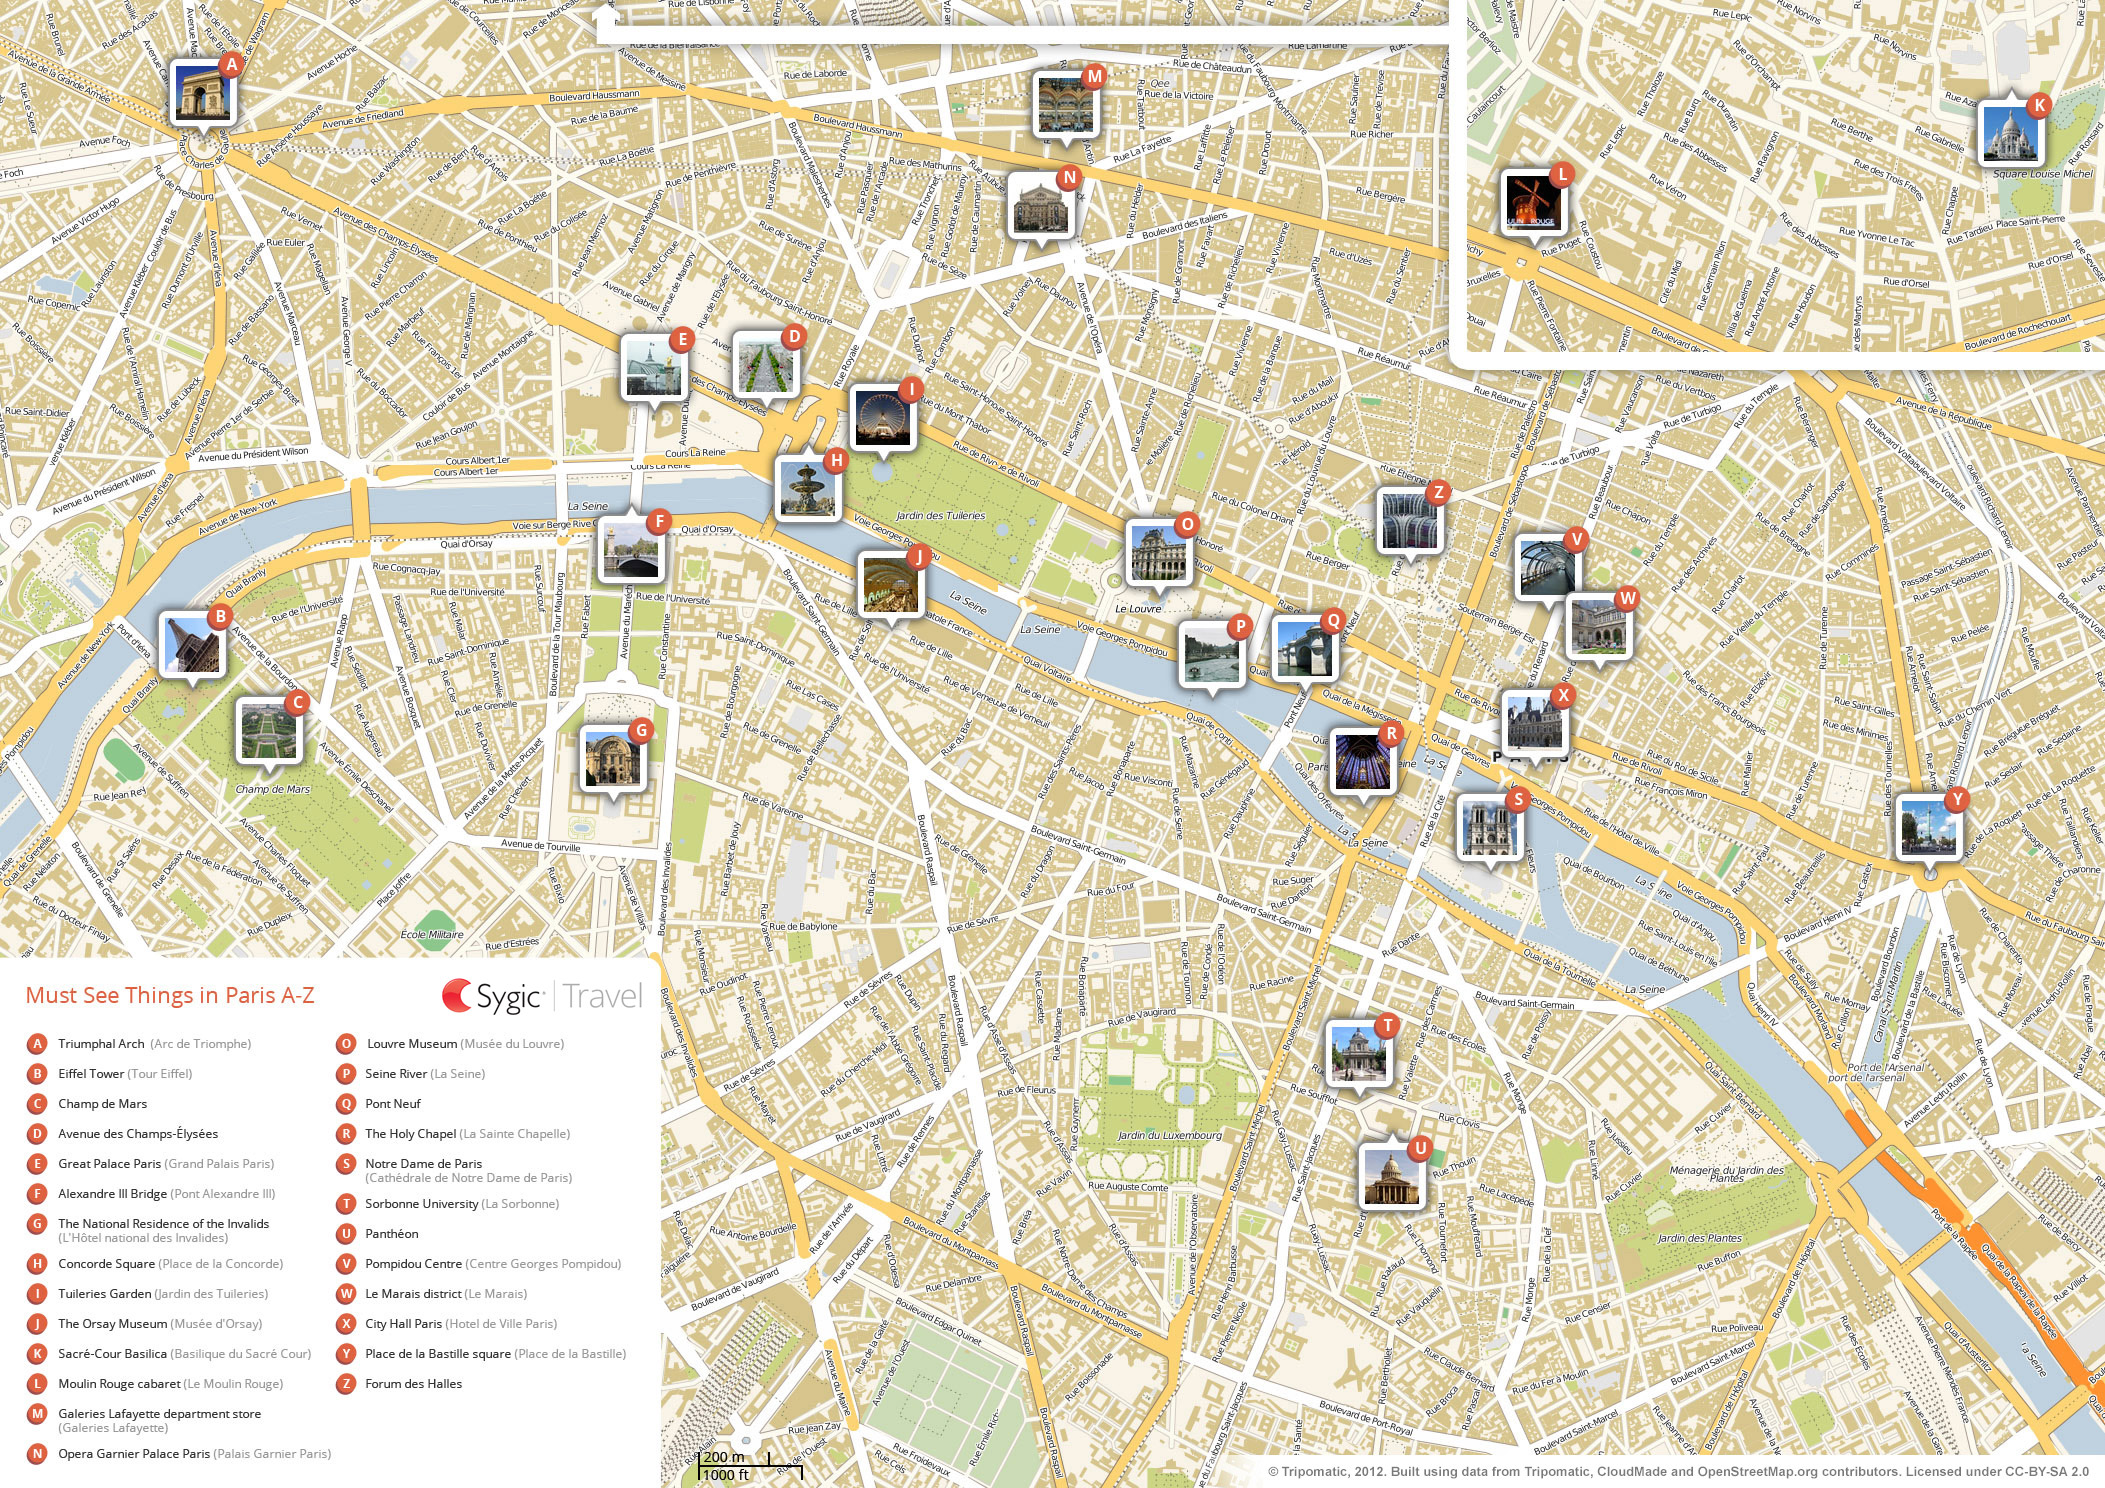 Paris Printable Tourist Map – Map Of Central London With Tourist Attractions